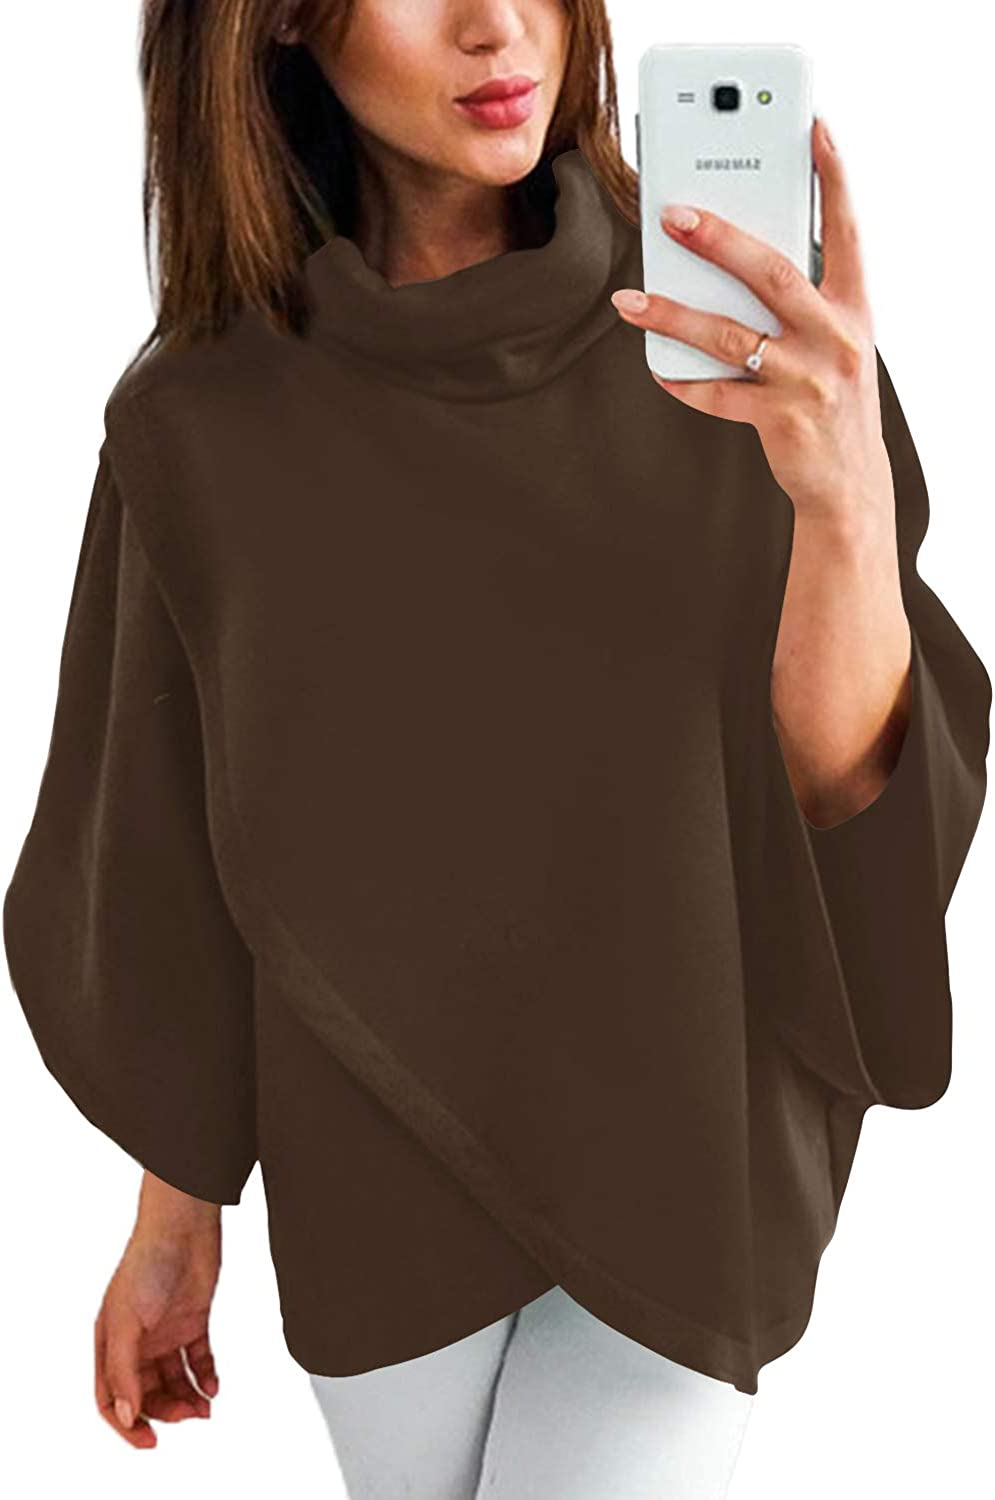 YOINS Outwear Capes Turtleneck Poncho for Women Chimney Collar Flared 3/4 Sleeves Irregular Hem Pullover Sweaters